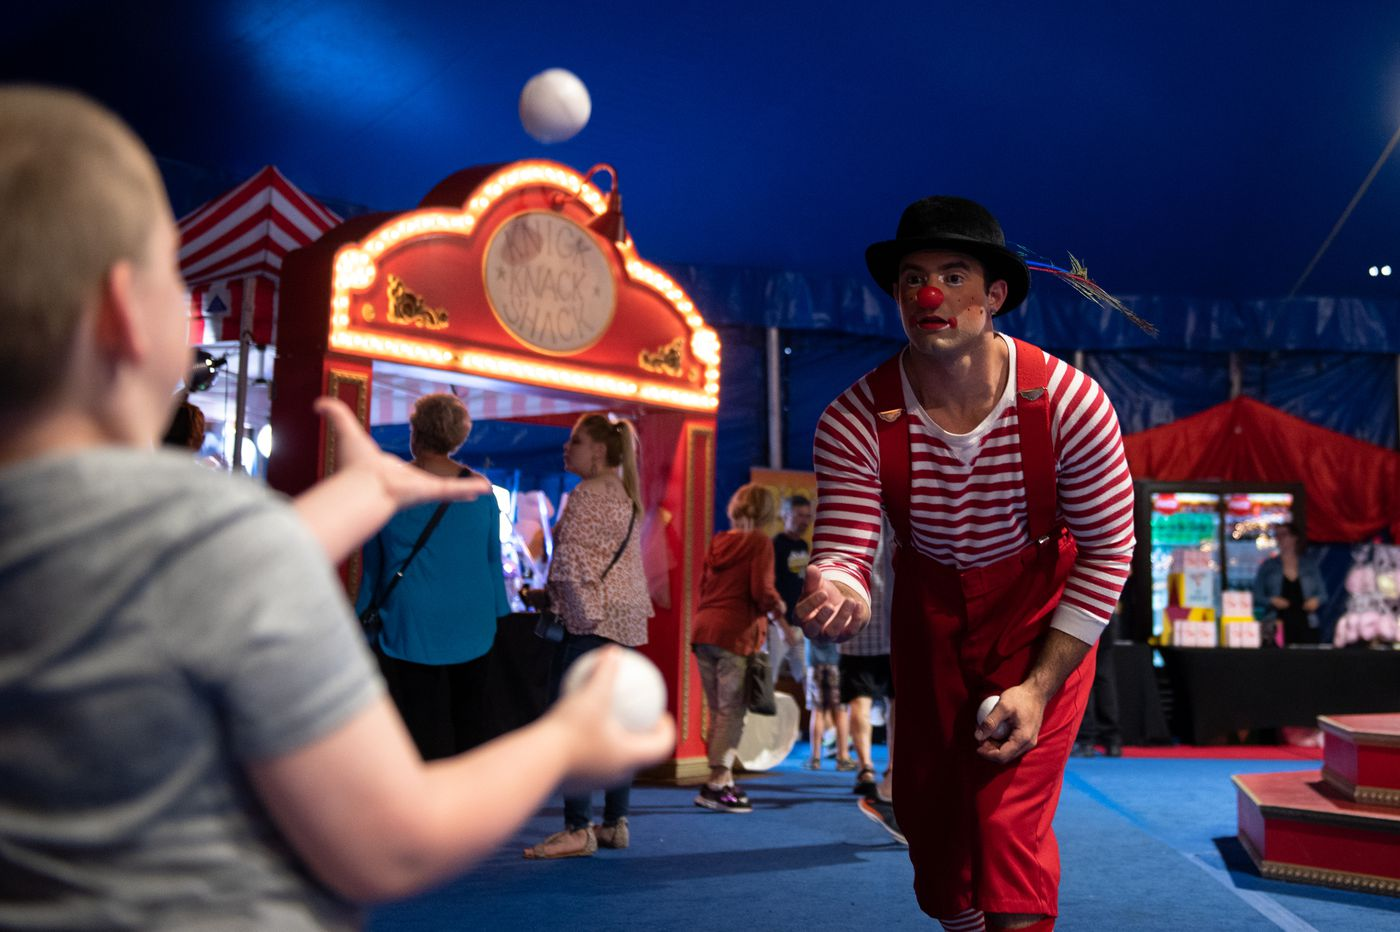 Big Apple Circus cancels arena tour amid low ticket sales, internal email shows